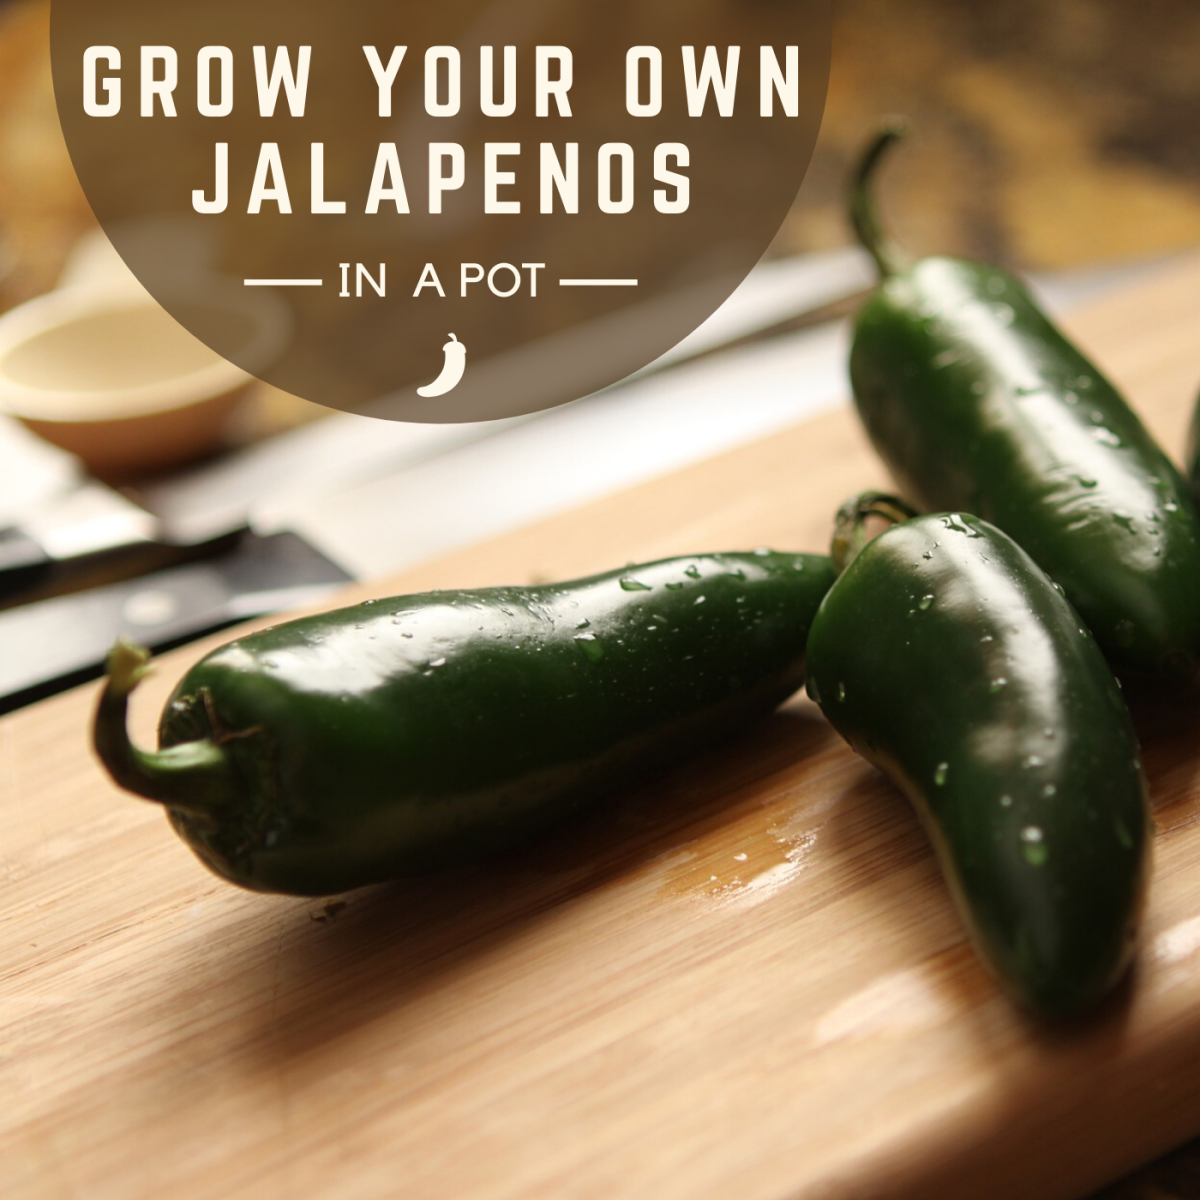 Learn how to grow your own jalapeño plant in a container at home. No yard necessary!